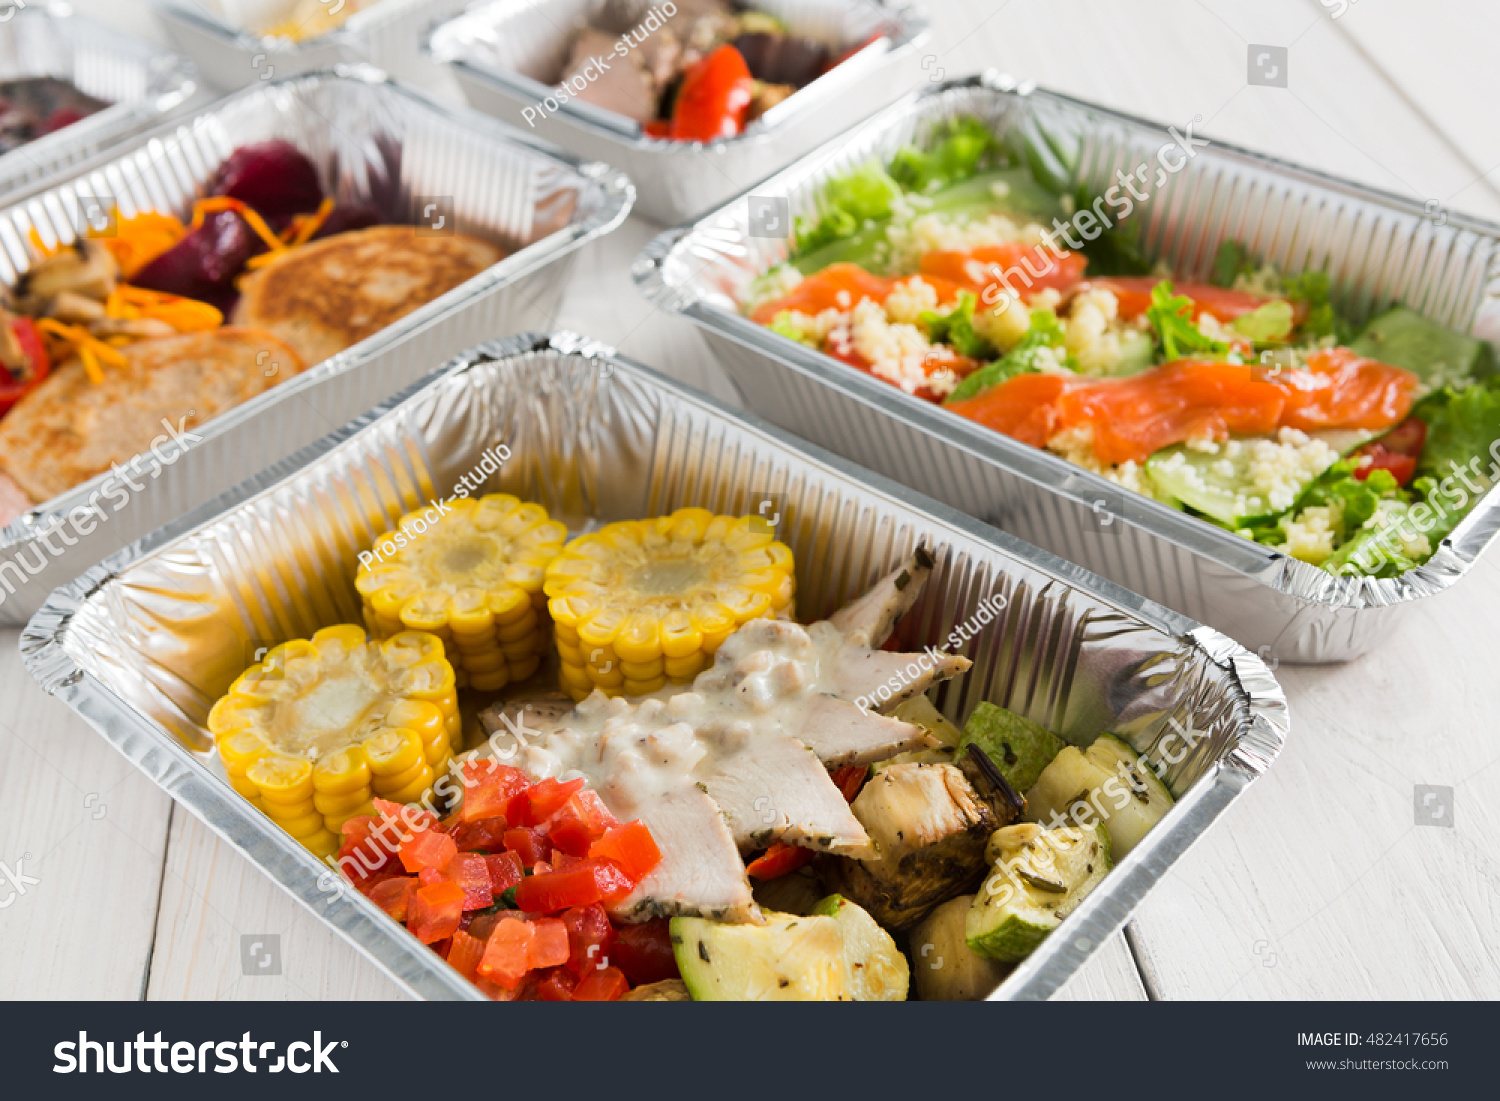 Royalty Free Healthy Food Delivery Daily Ration 482417656 Stock